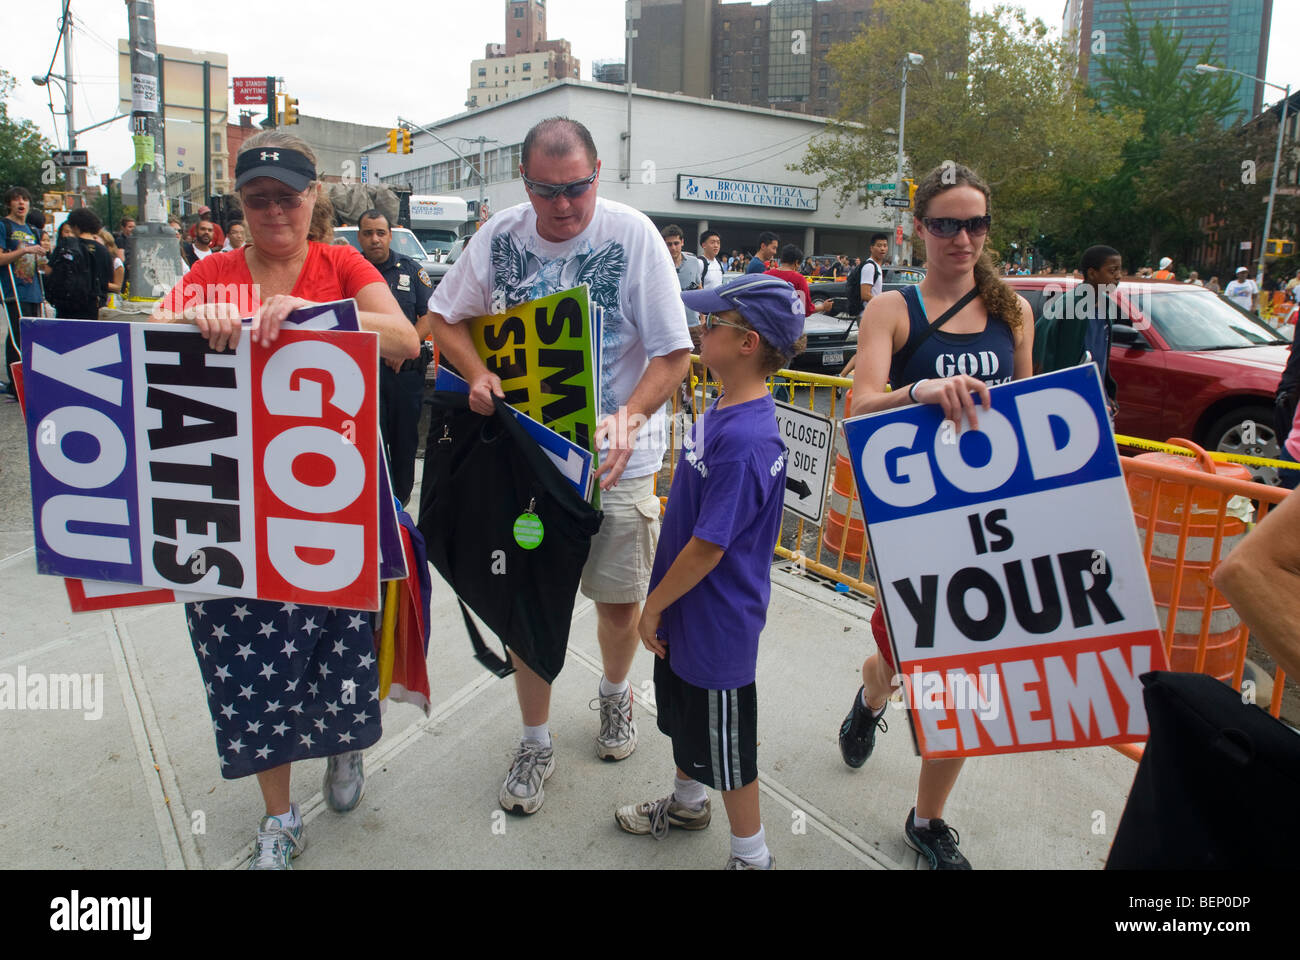 Members of the Westboro Baptist Church pack up their signs after protesting at Brooklyn Technical High School in - Stock Image